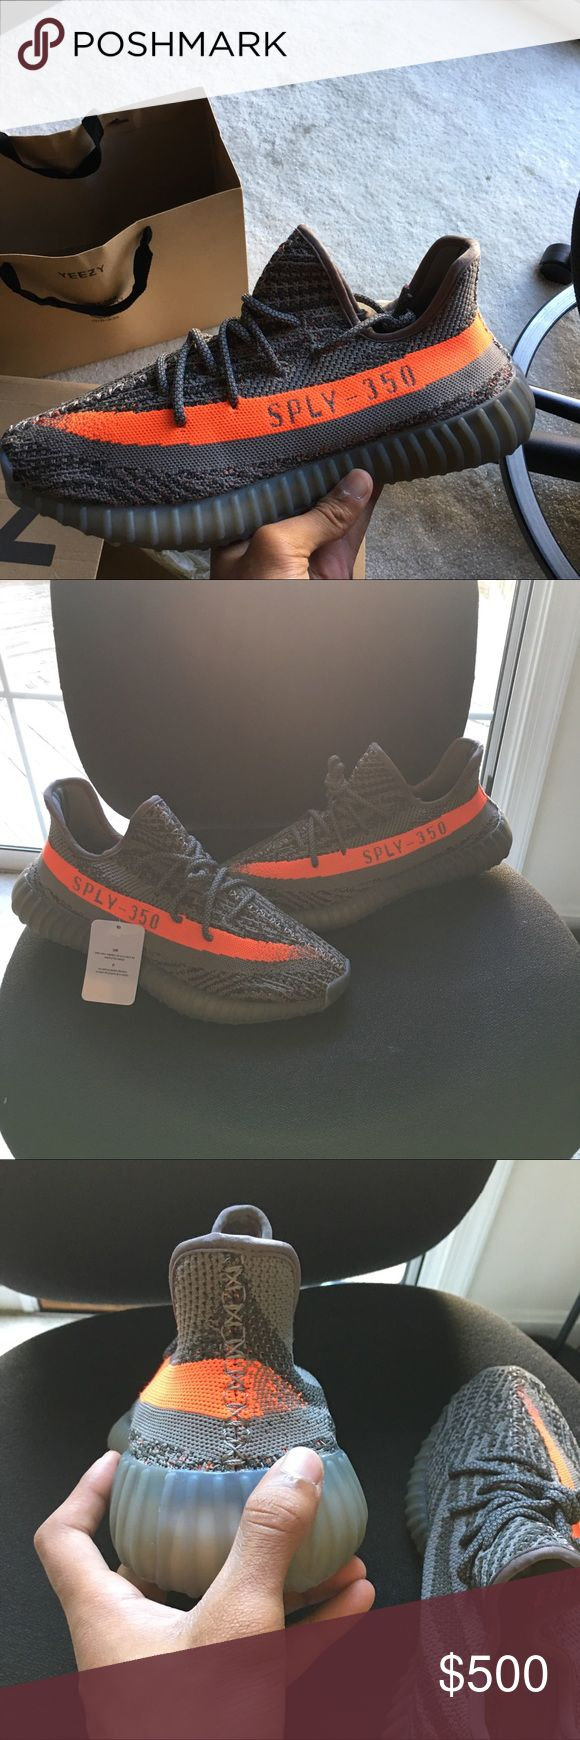 Authentic Yeez V2 Beluga Yeezy V2 Beluga size 10 comes with the  receipt that adidas sent with the shoes, also of ruse the original box and bag. I AM taking offers for these. Hit me with an offer and I'll see what negotiations we can work out. I actually can't fit these shoes they hurt my feet now for some odd reason so I am selling them. Yes they have been tried on but I never went anywhere with them. The shoes have been in the box for a while they are like new. Letting go for a decent…